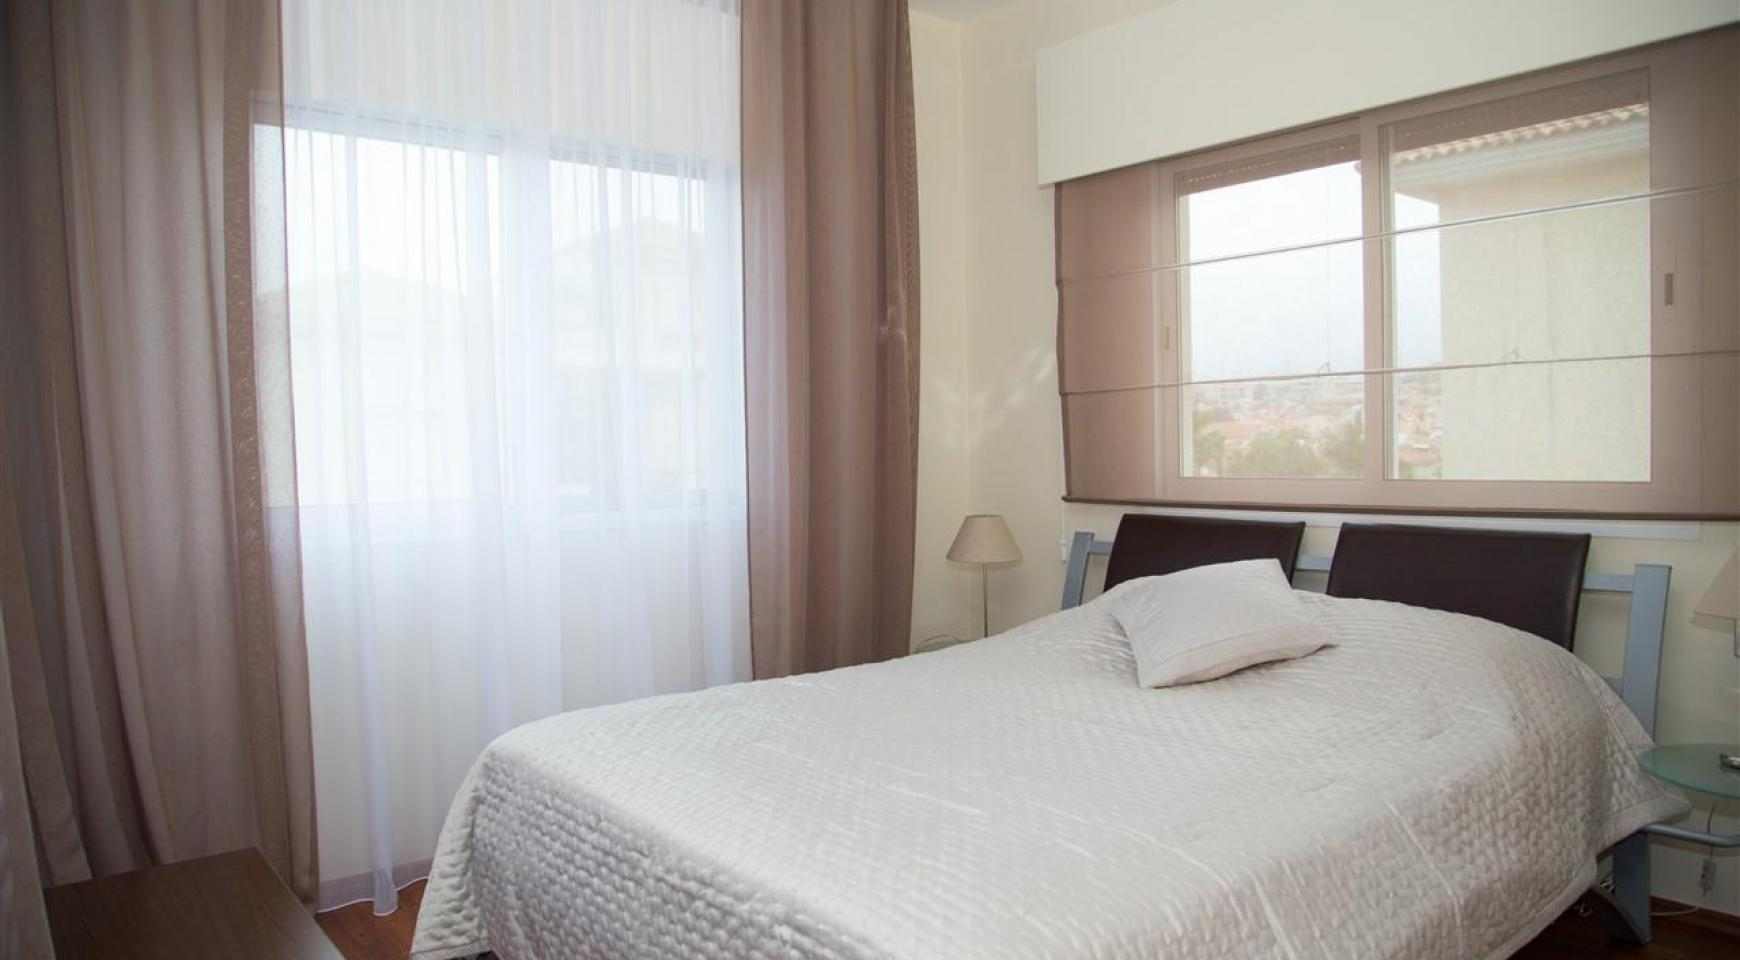 Luxury 2 Bedroom Apartment Mesogios Iris 304 in the Tourist area near the Beach - 15